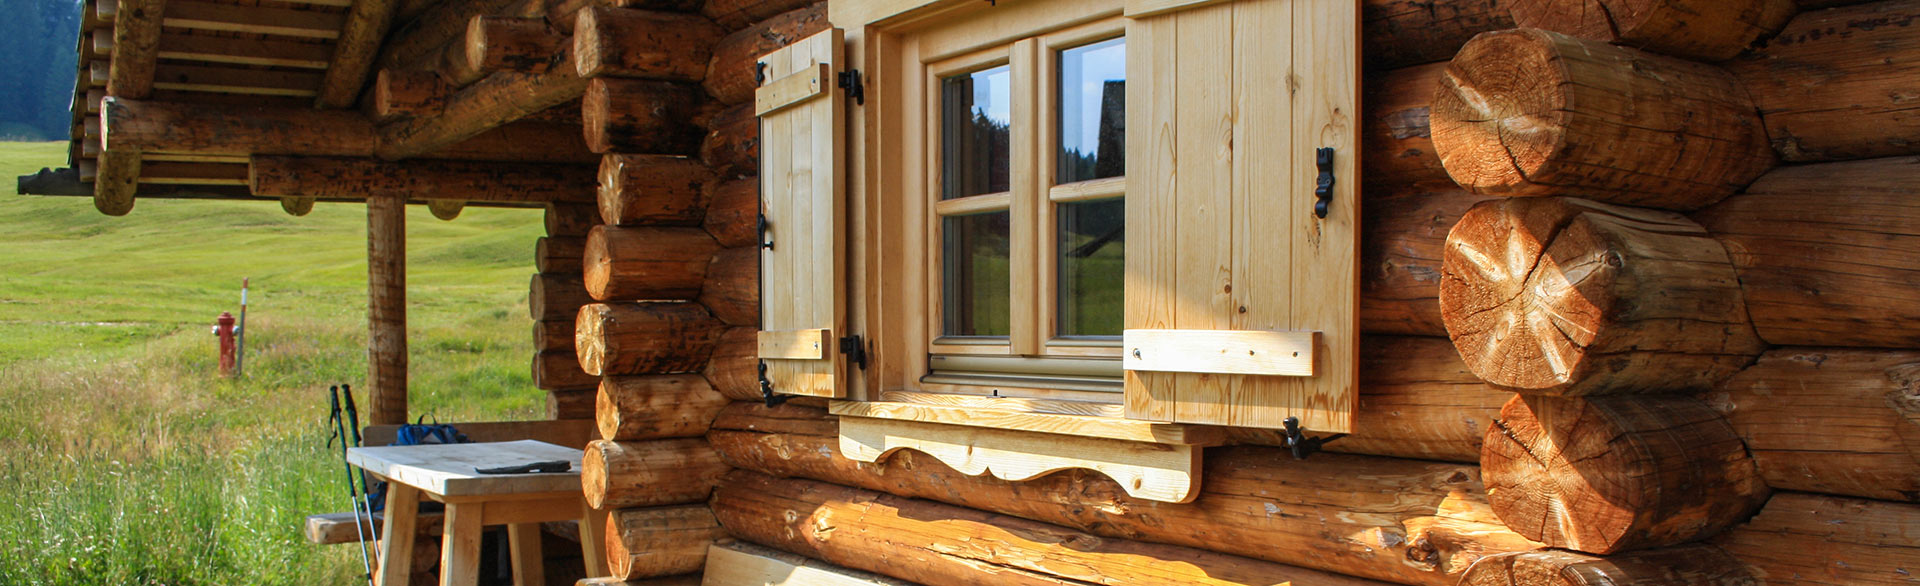 Prices and offers - Farm holidays Tulba in Selva in Val Gardena